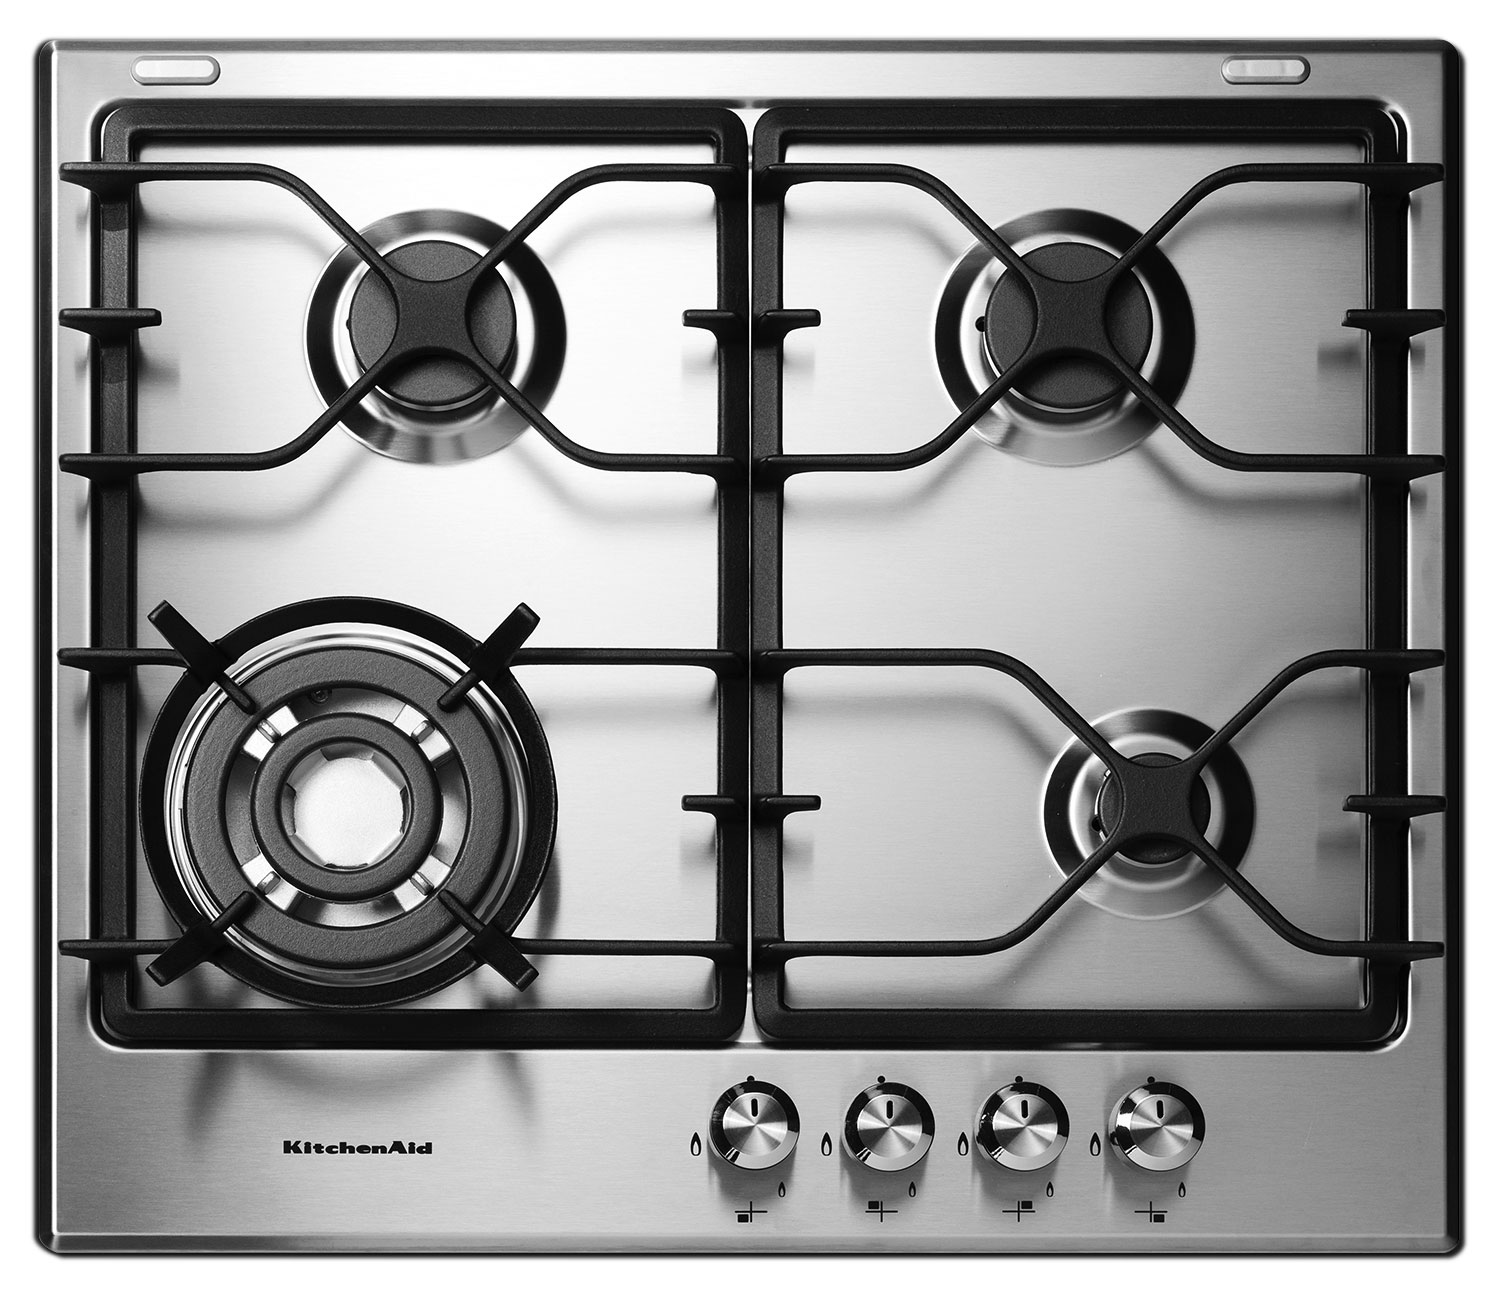 Cooking Products - KitchenAid Stainless Steel Gas Cooktop - KGCK346BSS